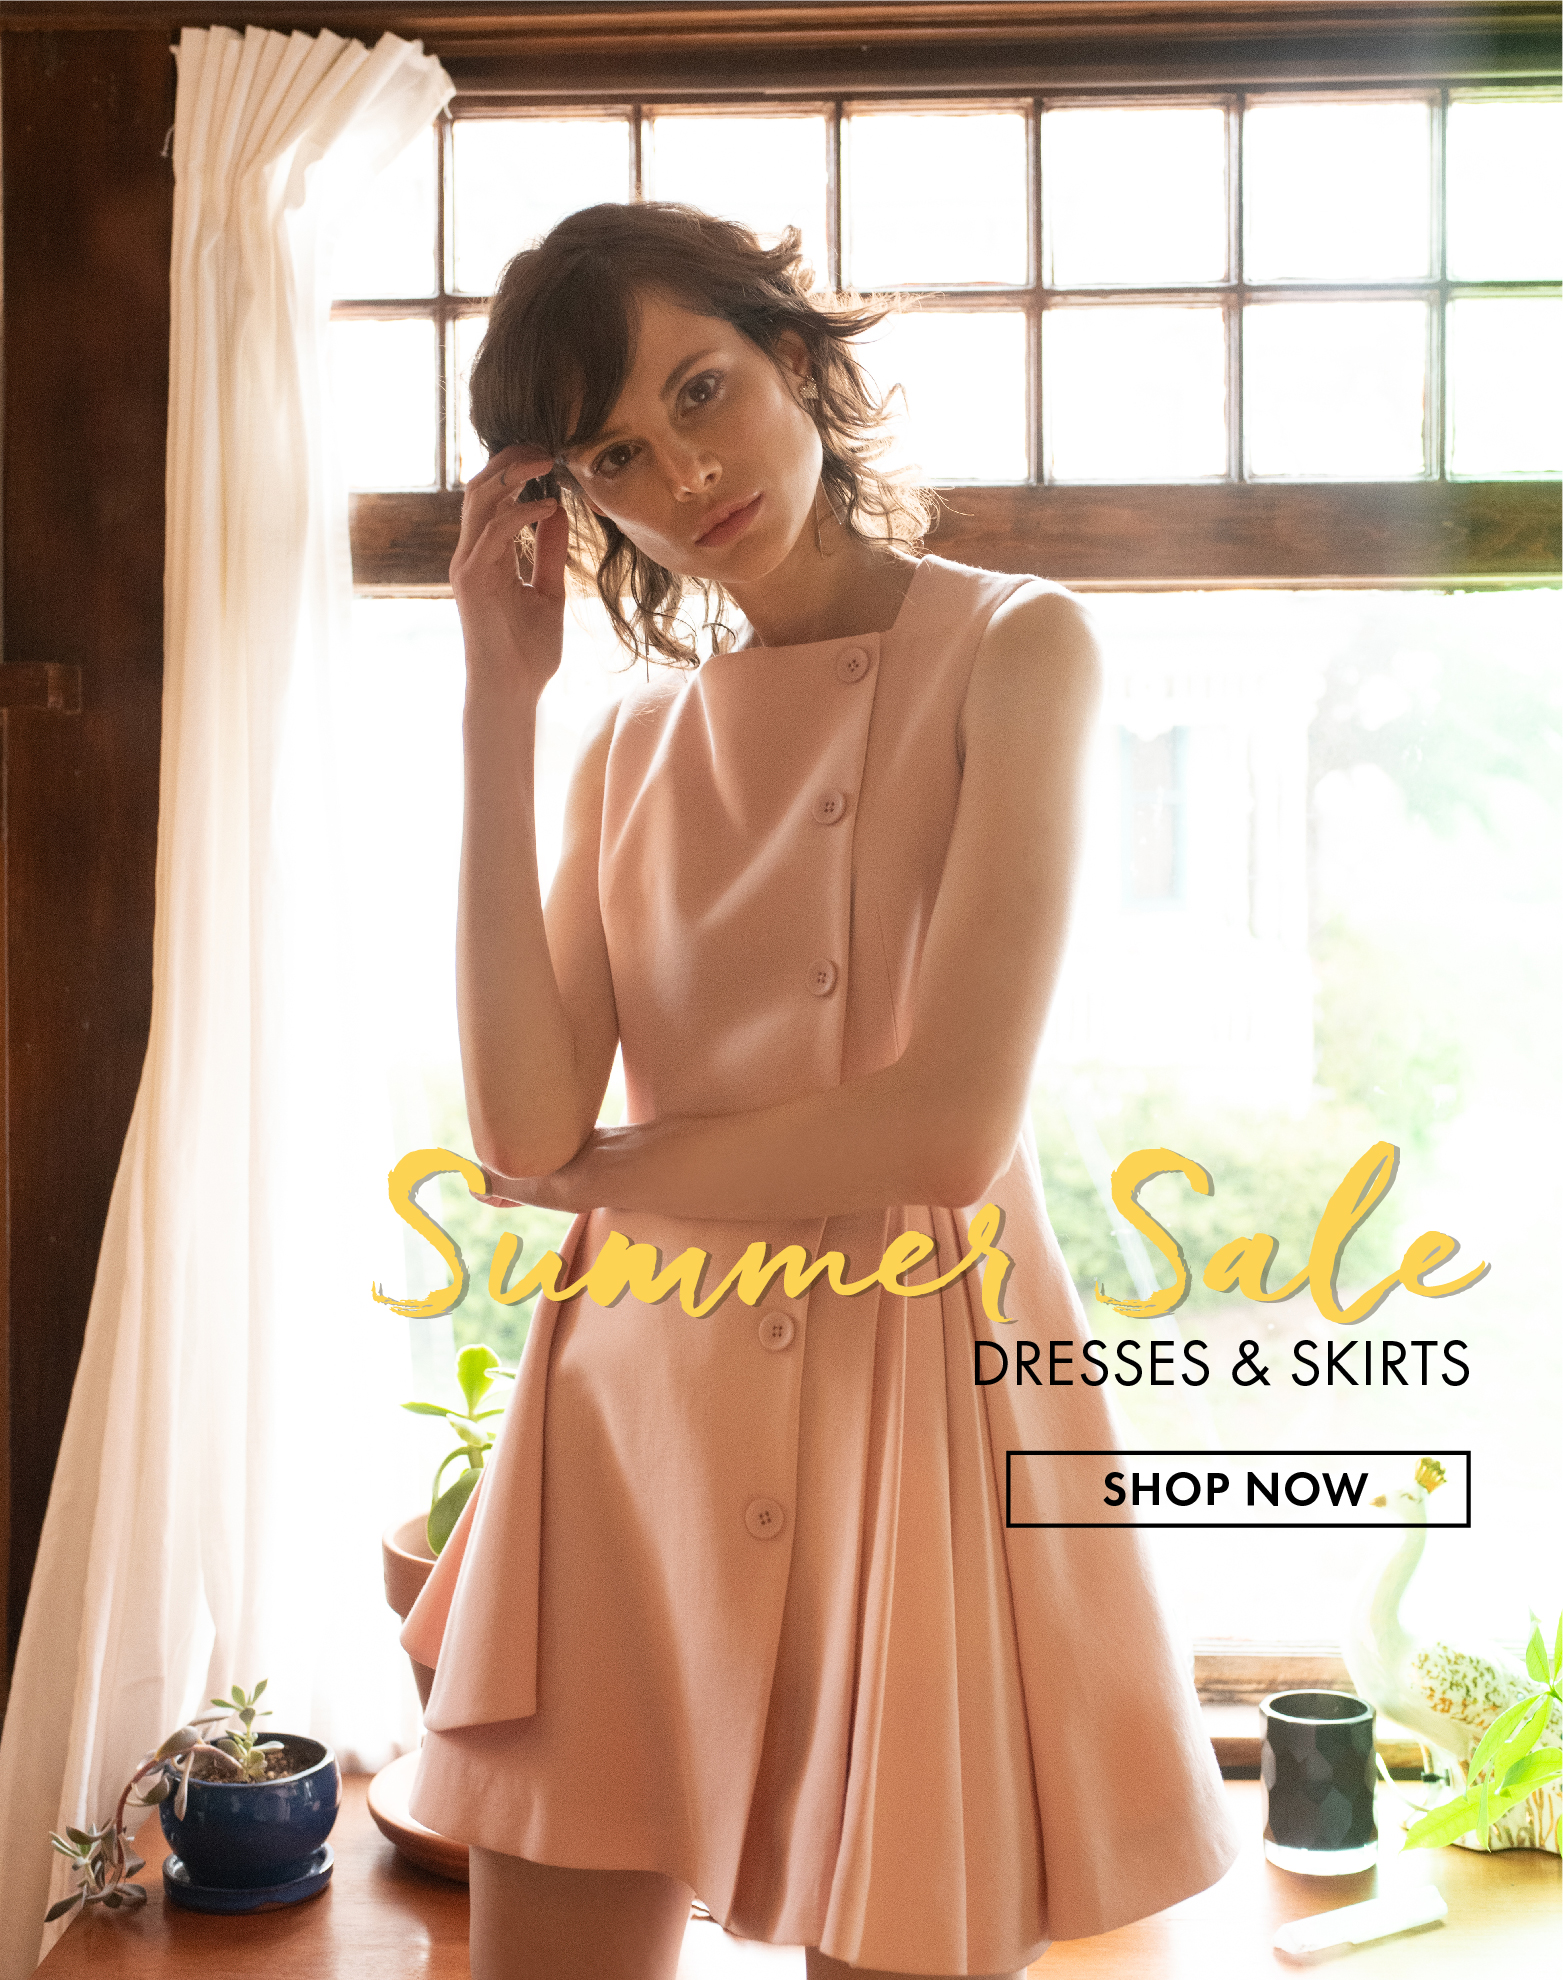 Summer Sale Dresses and Skirt